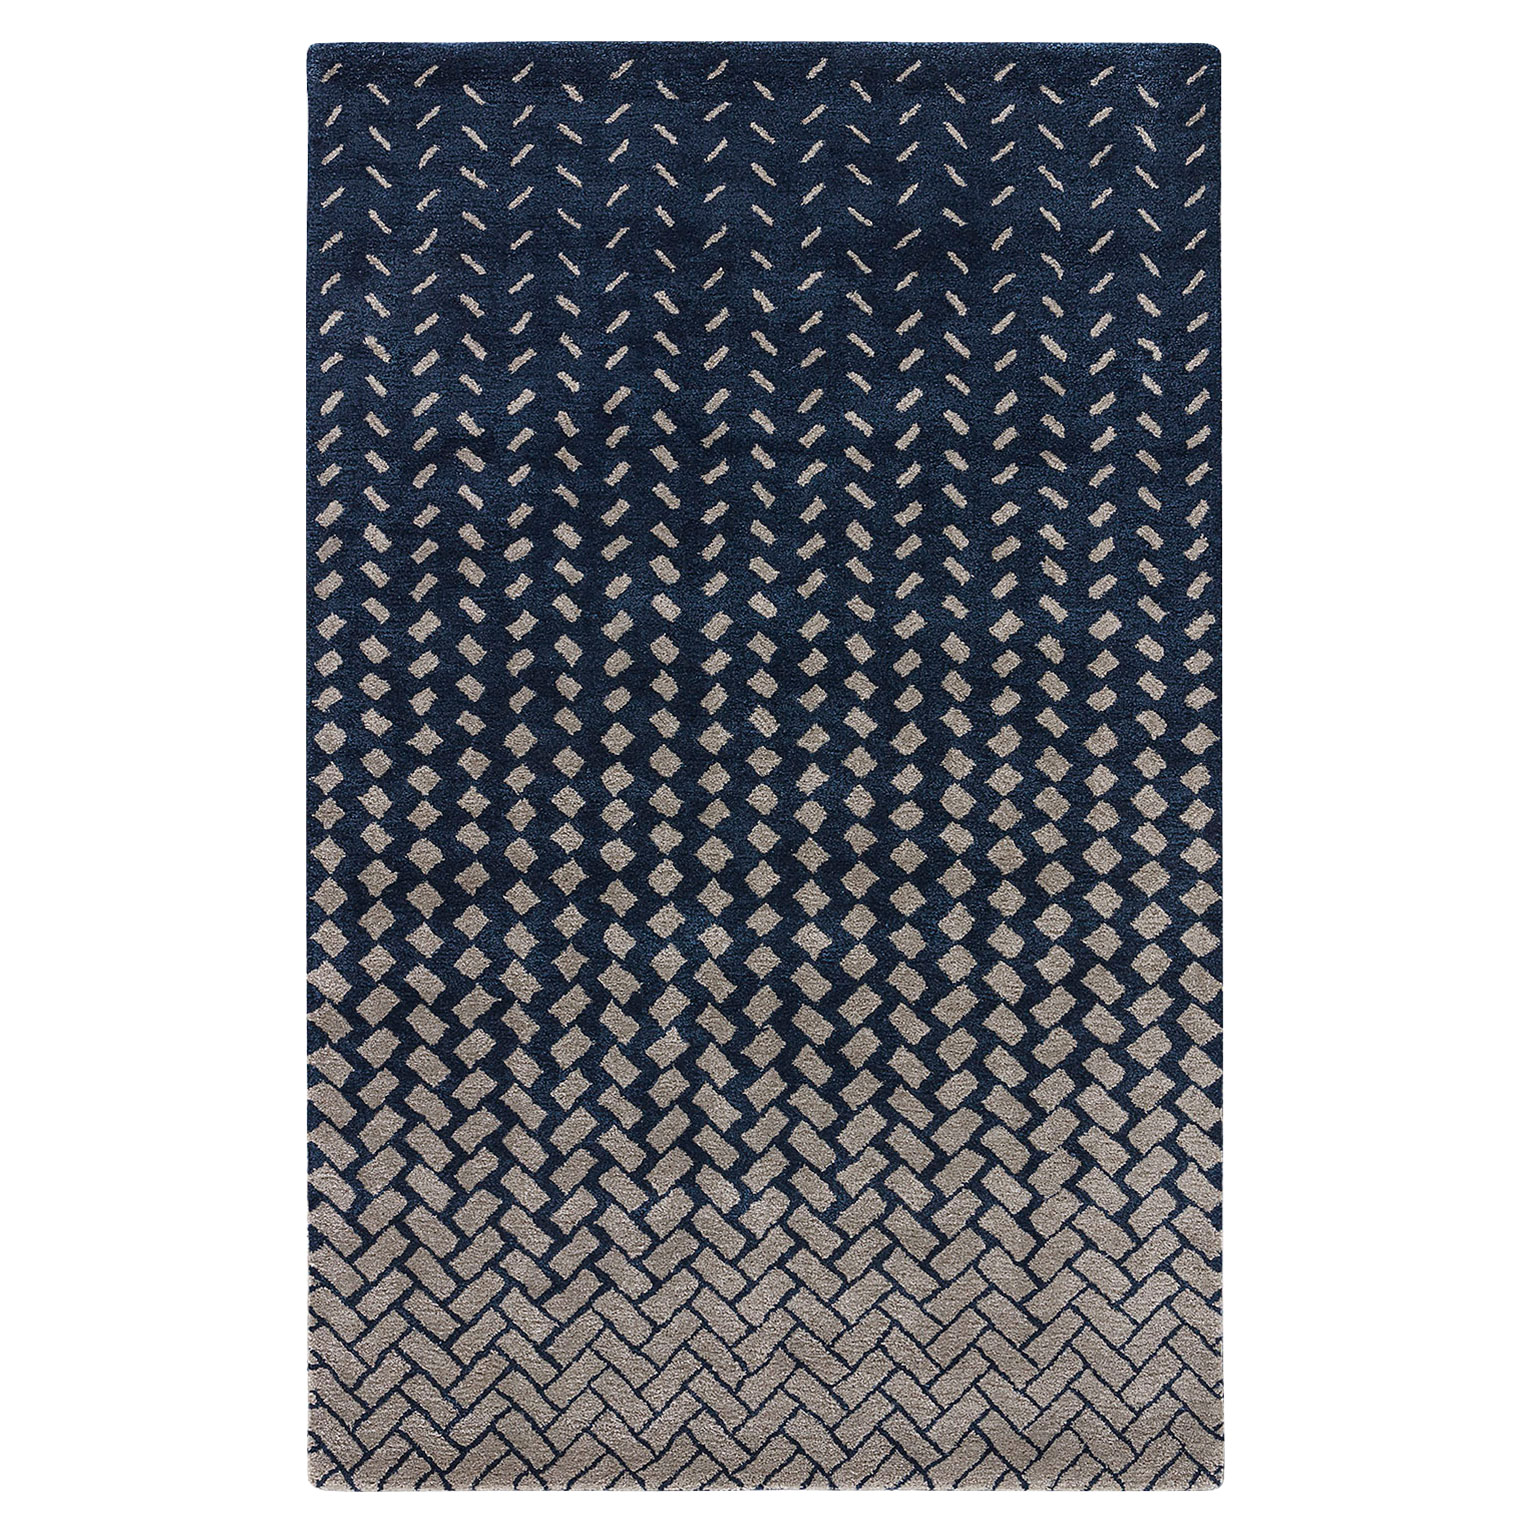 Wisco Modern Tile Wash Navy Wool Rug - 2x3